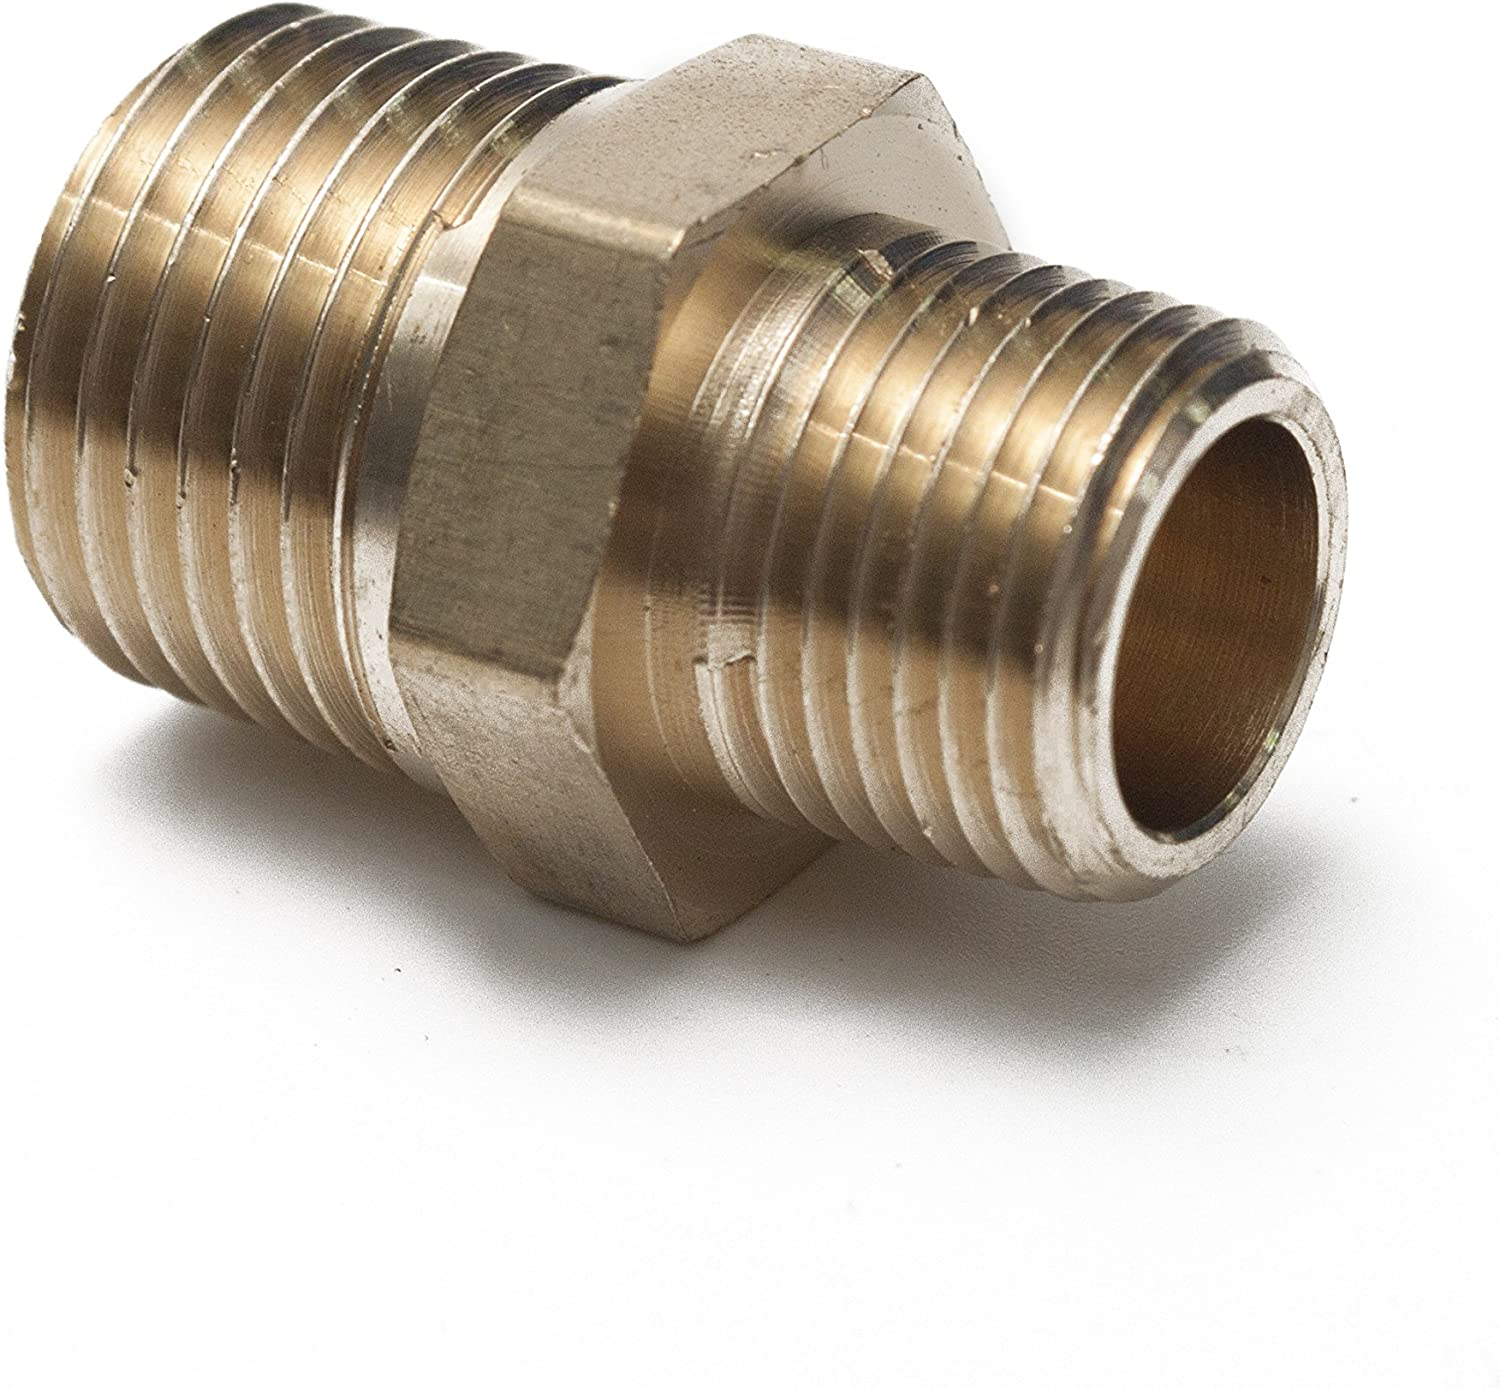 Pack of 5 LTWFITTING Brass Pipe Hex Reducing Nipple Fitting 1//2-Inch x 3//8-Inch Male NPT